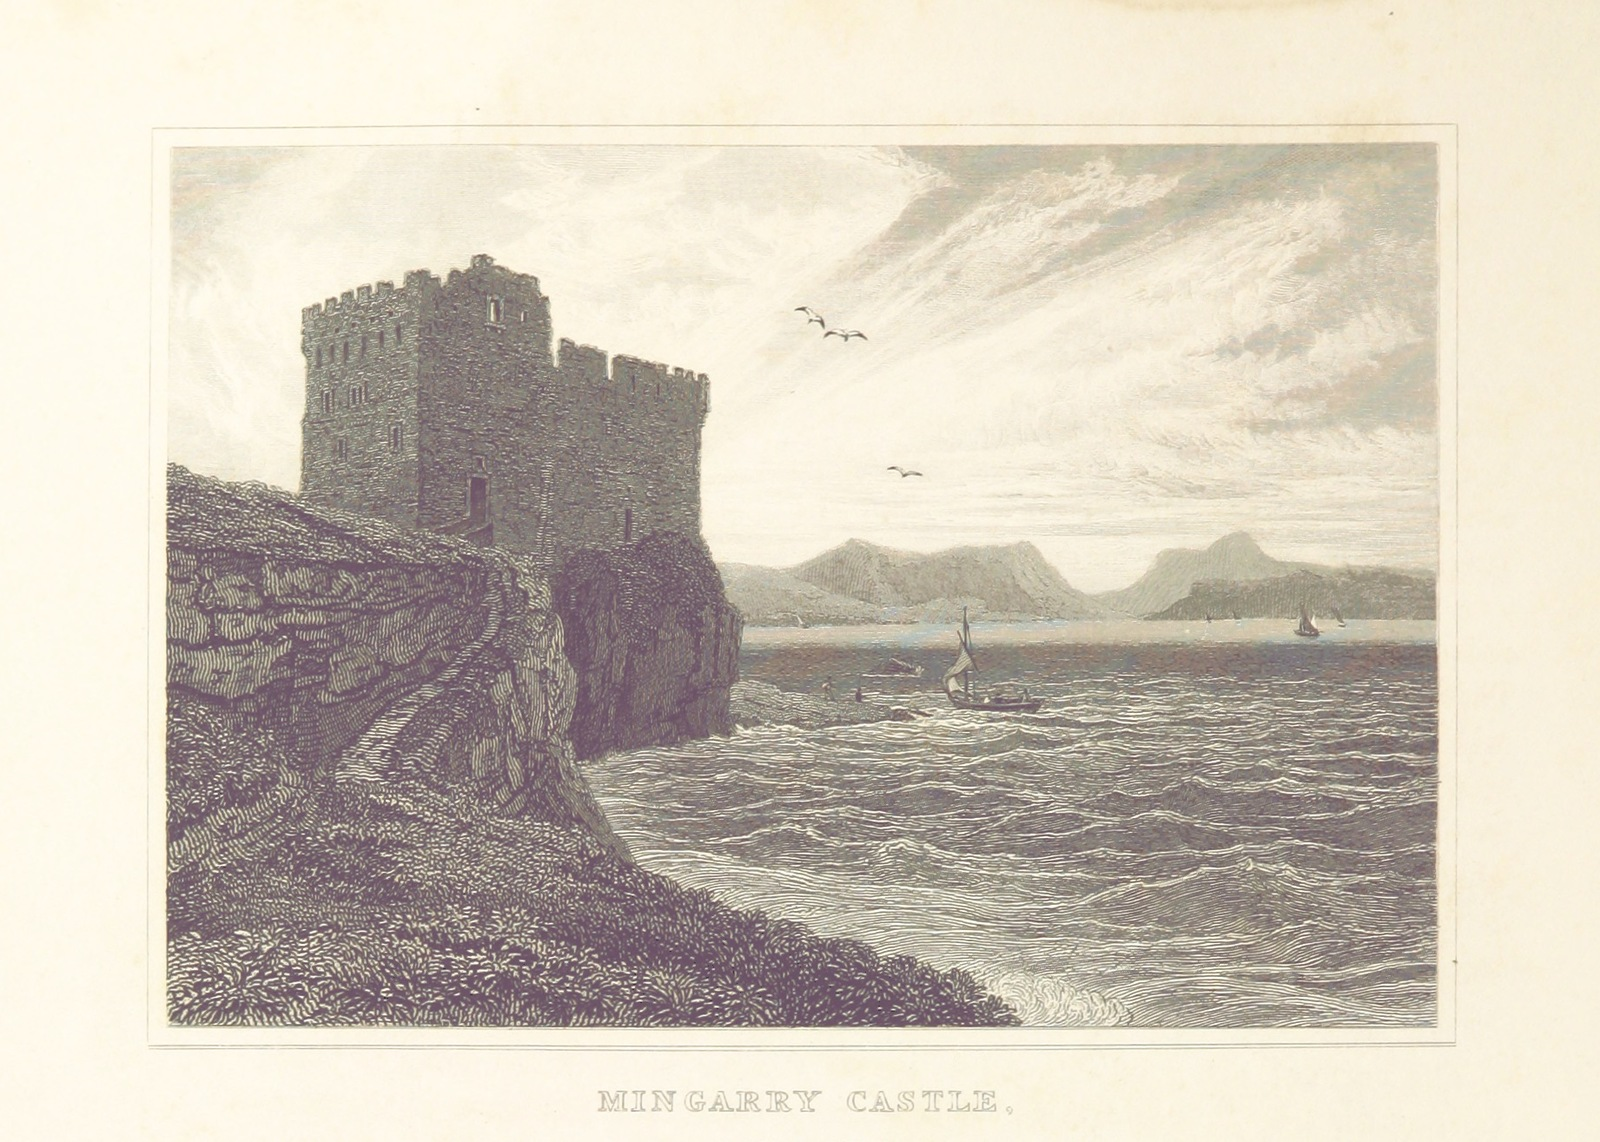 """Mingarry Castle from """"Modern Athens, displayed in a series of views; or, Edinburgh in the nineteenth century; exhibiting the whole of the new buildings, modern improvements, antiquities, & picturesque scenery of the Scottish metropolis & its environs, from original drawings by Mr. T. H. Shepherd. With historical, topographical & critical illustrations [by John Britton]"""""""